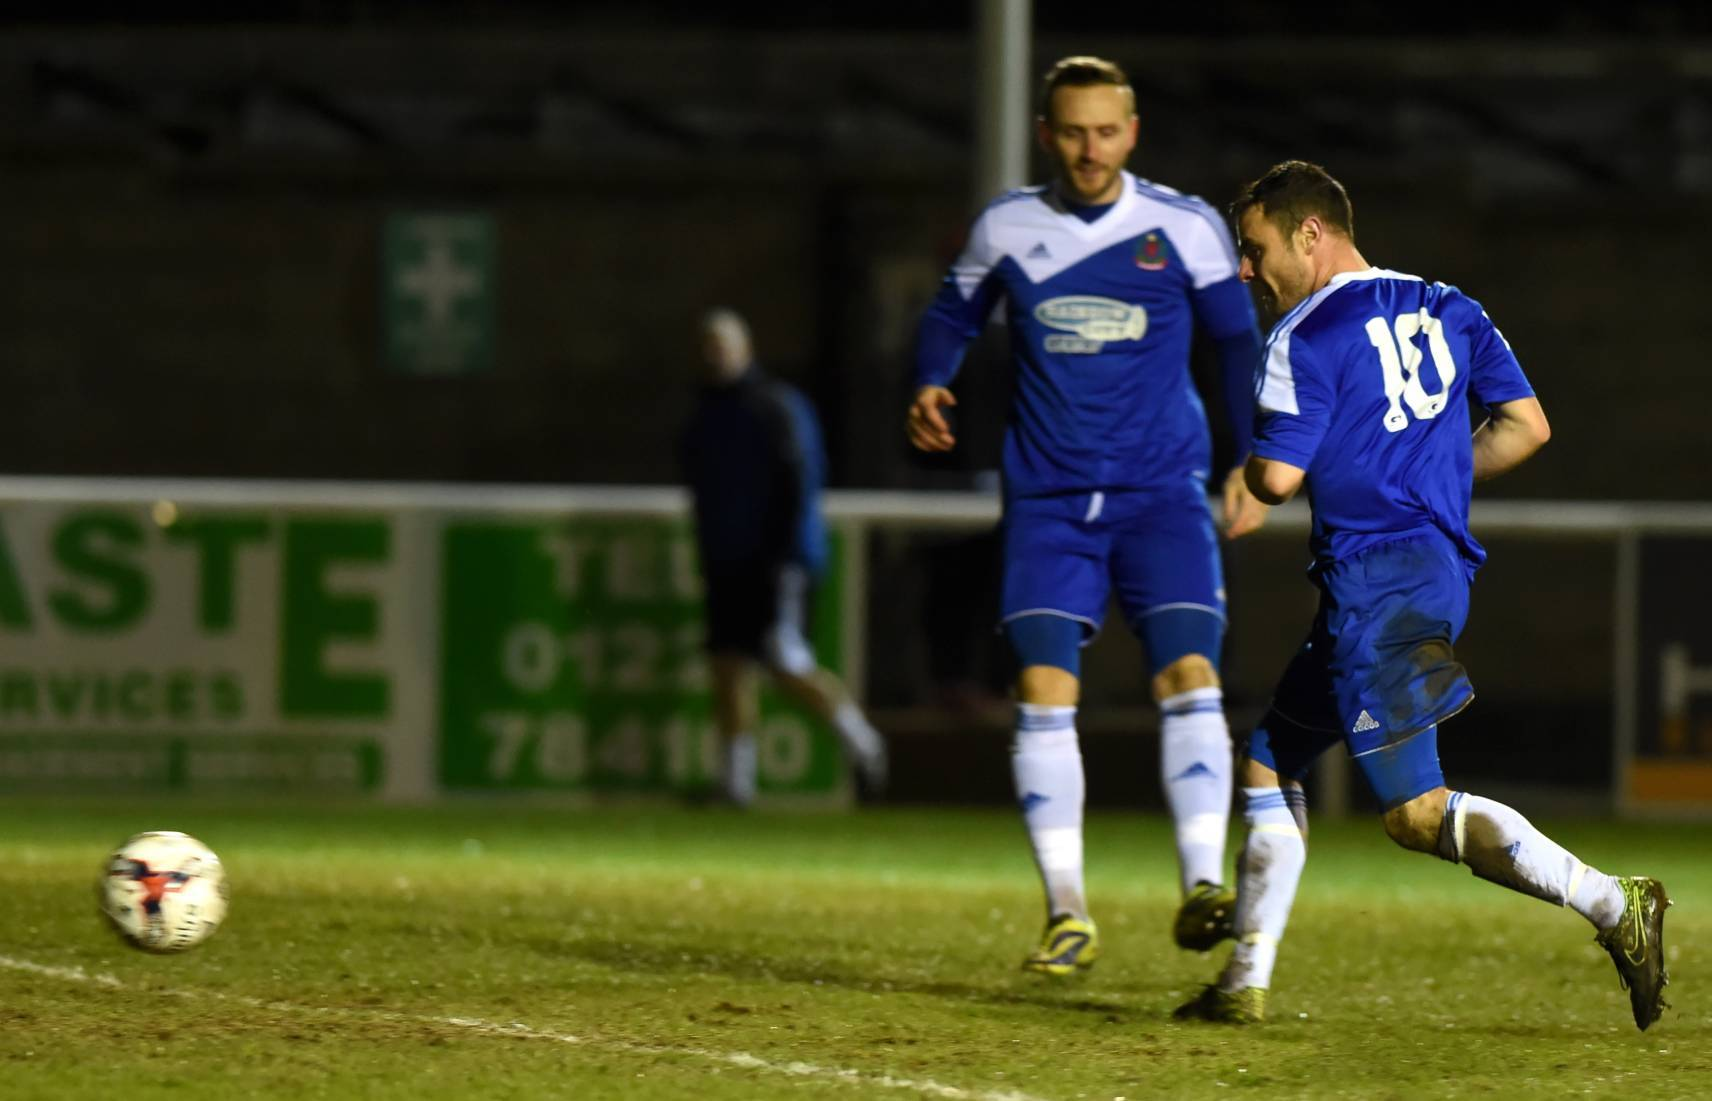 Jamie Watt, right, playing for Cove Rangers.